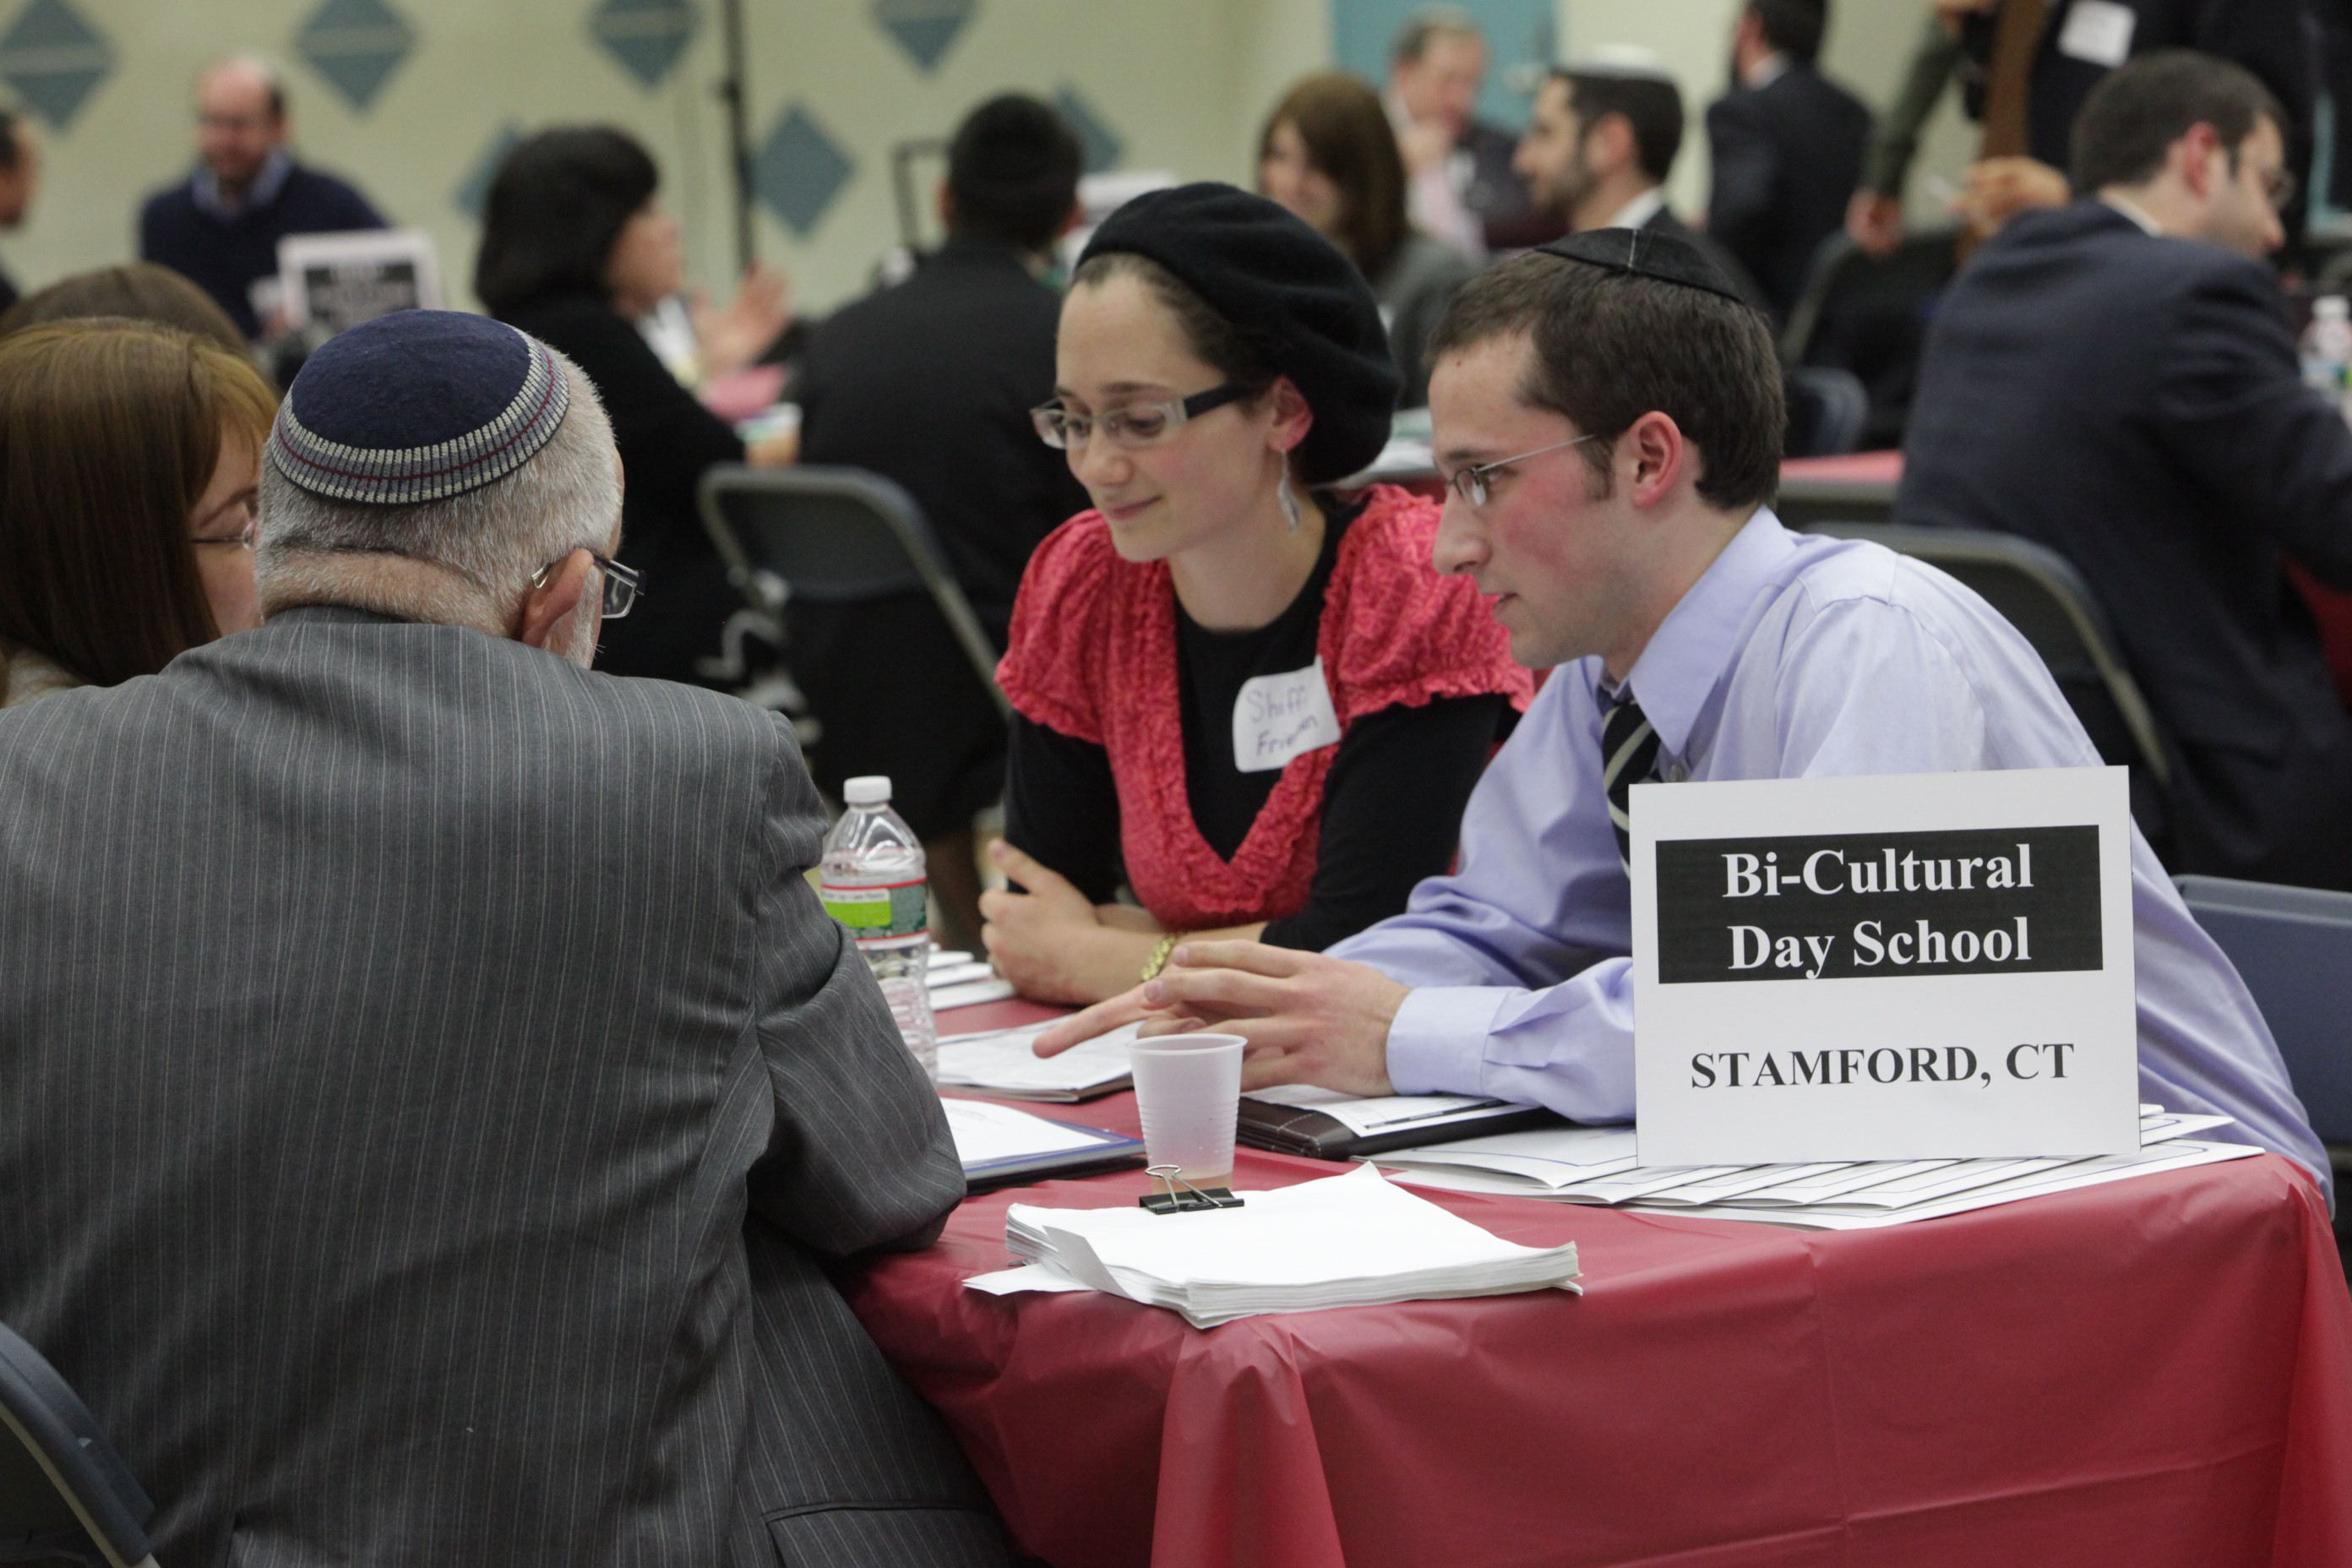 On Campus Chinuch Recruitment event at Yeshiva University